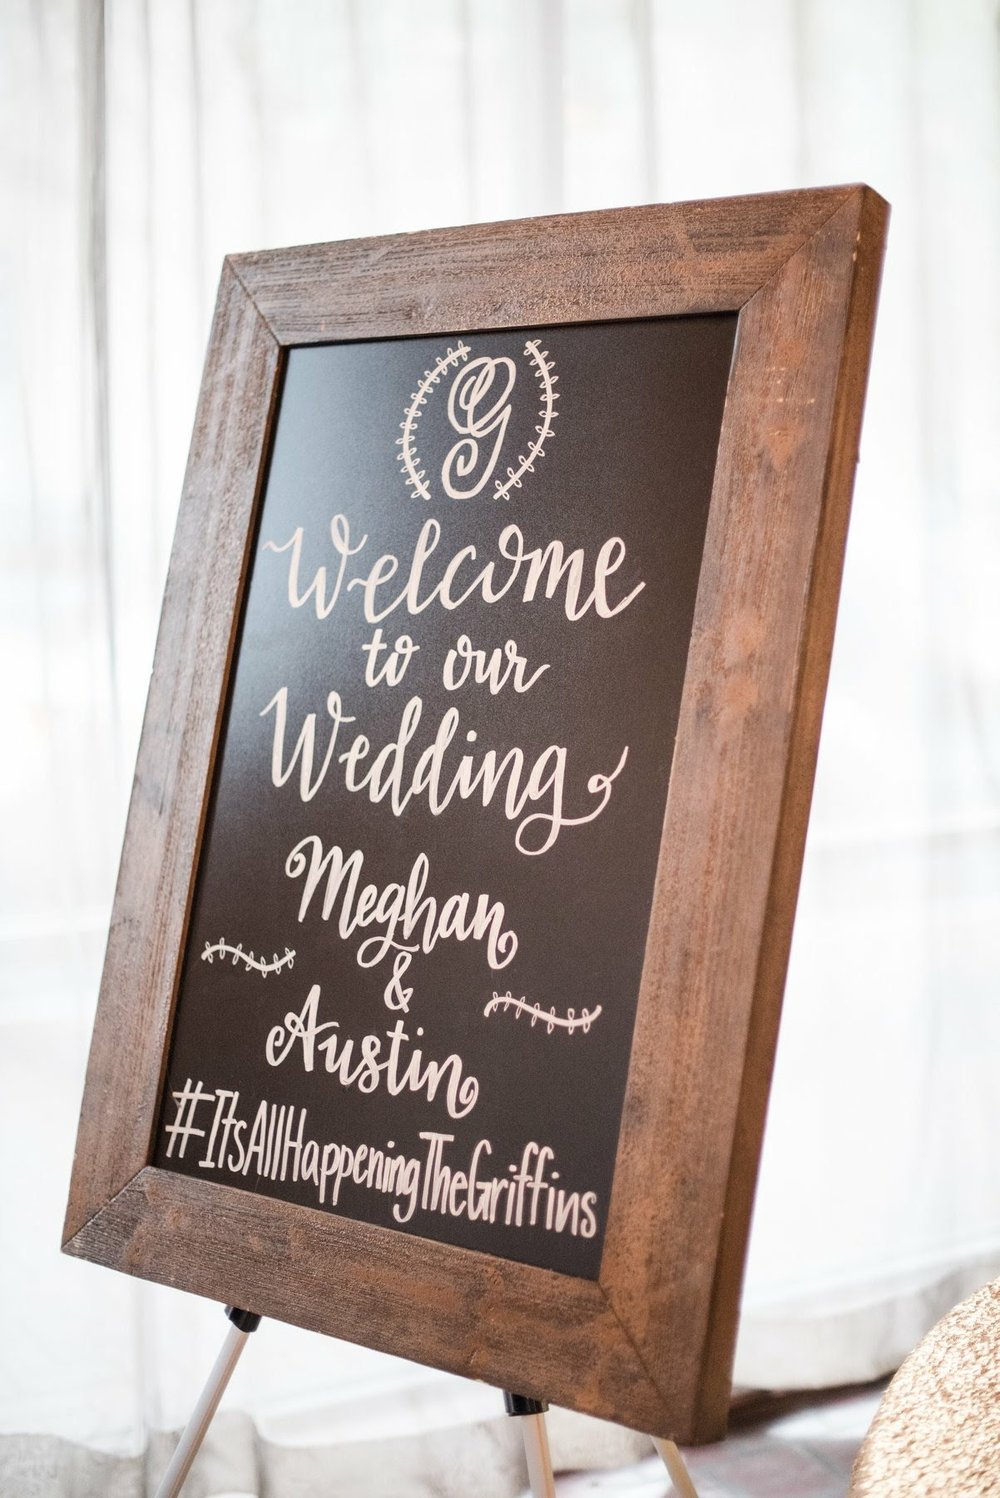 Welcome Griffin Wedding Chalkboard Calligraphy.jpg